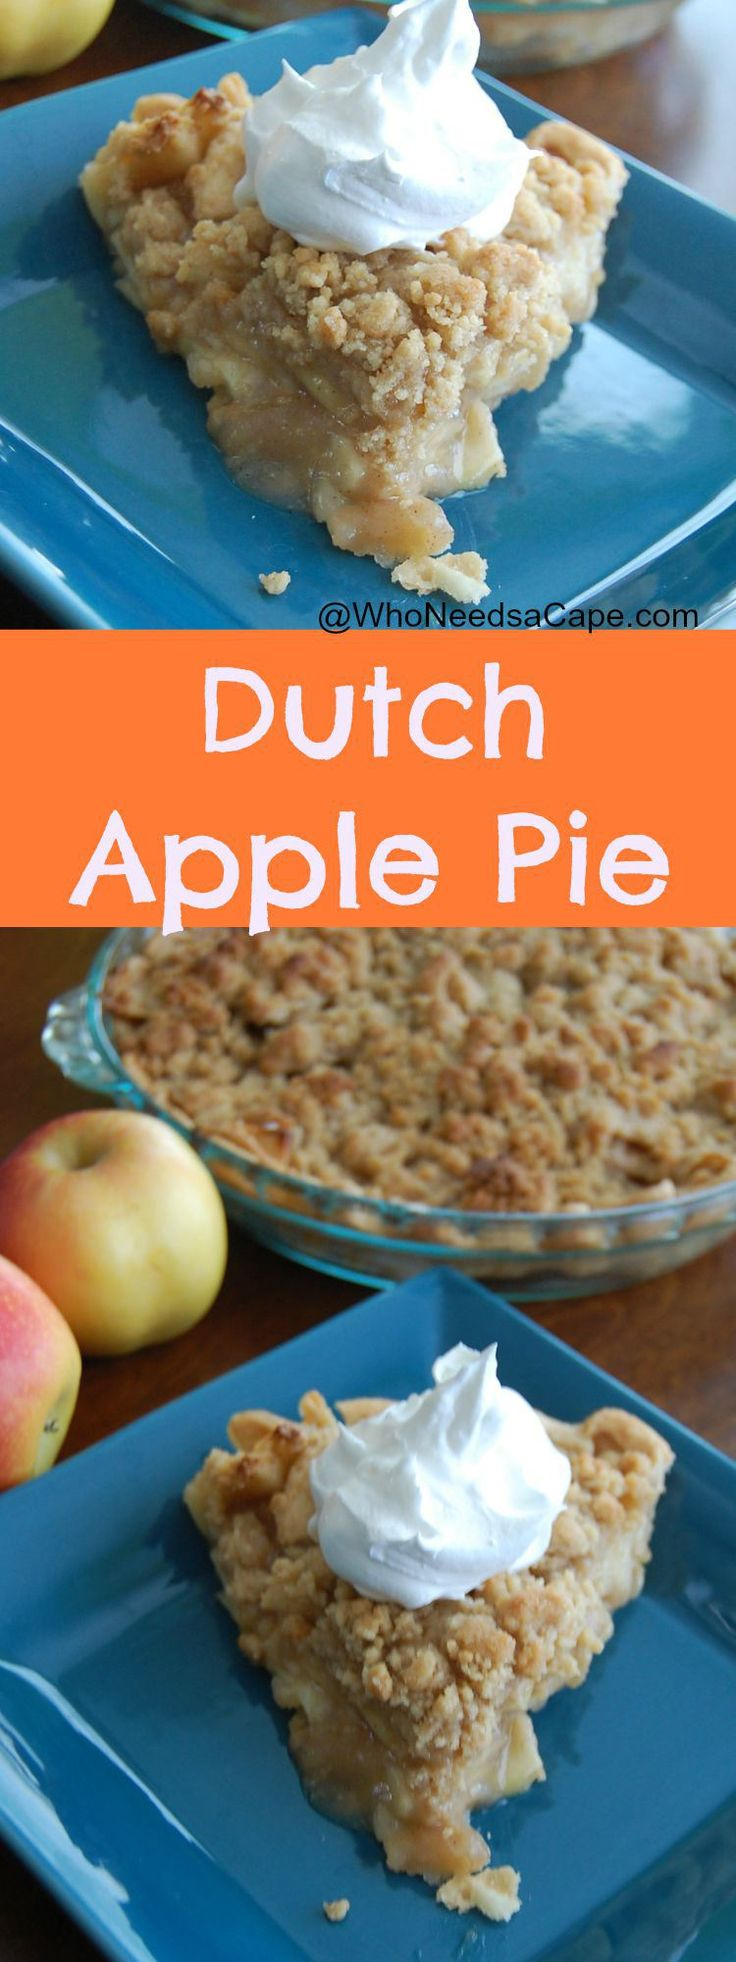 Dutch Apple Pie a wonderful holiday pie that's always a favorite. Easy to prepare and delicious with ice cream or whipped cream.